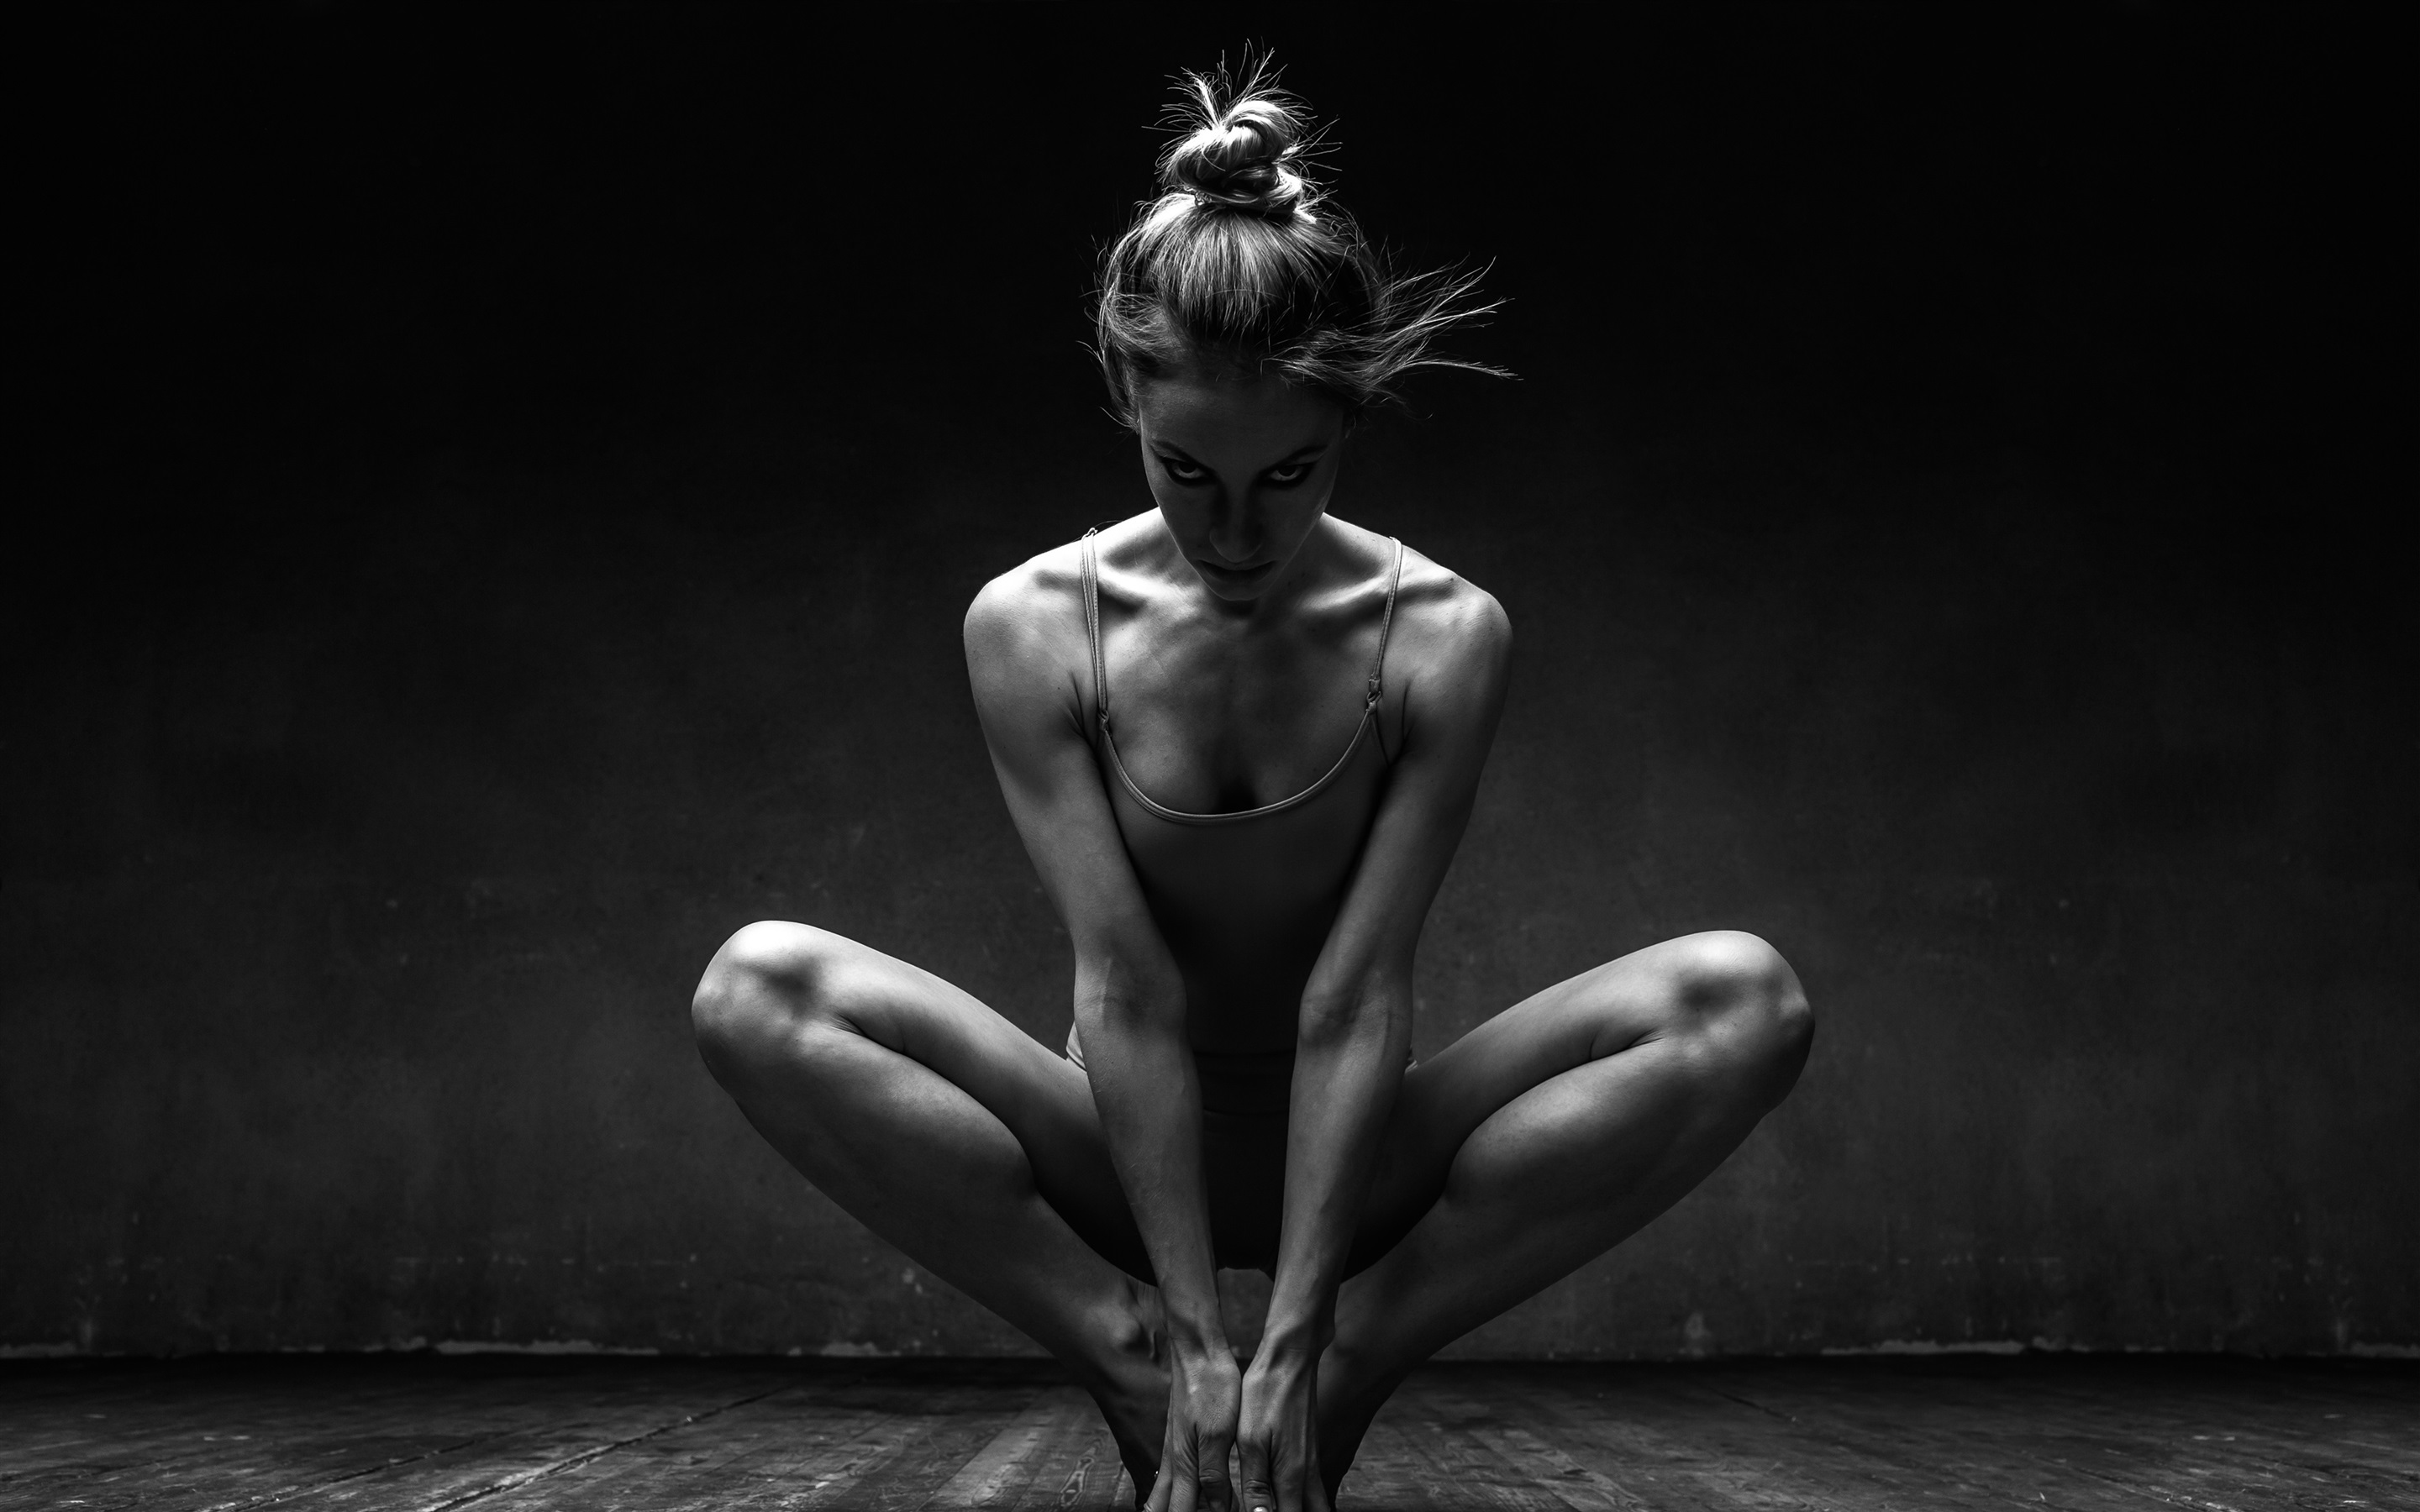 Wallpaper Ballerina Girl Pose Black And White Picture 3840x2160